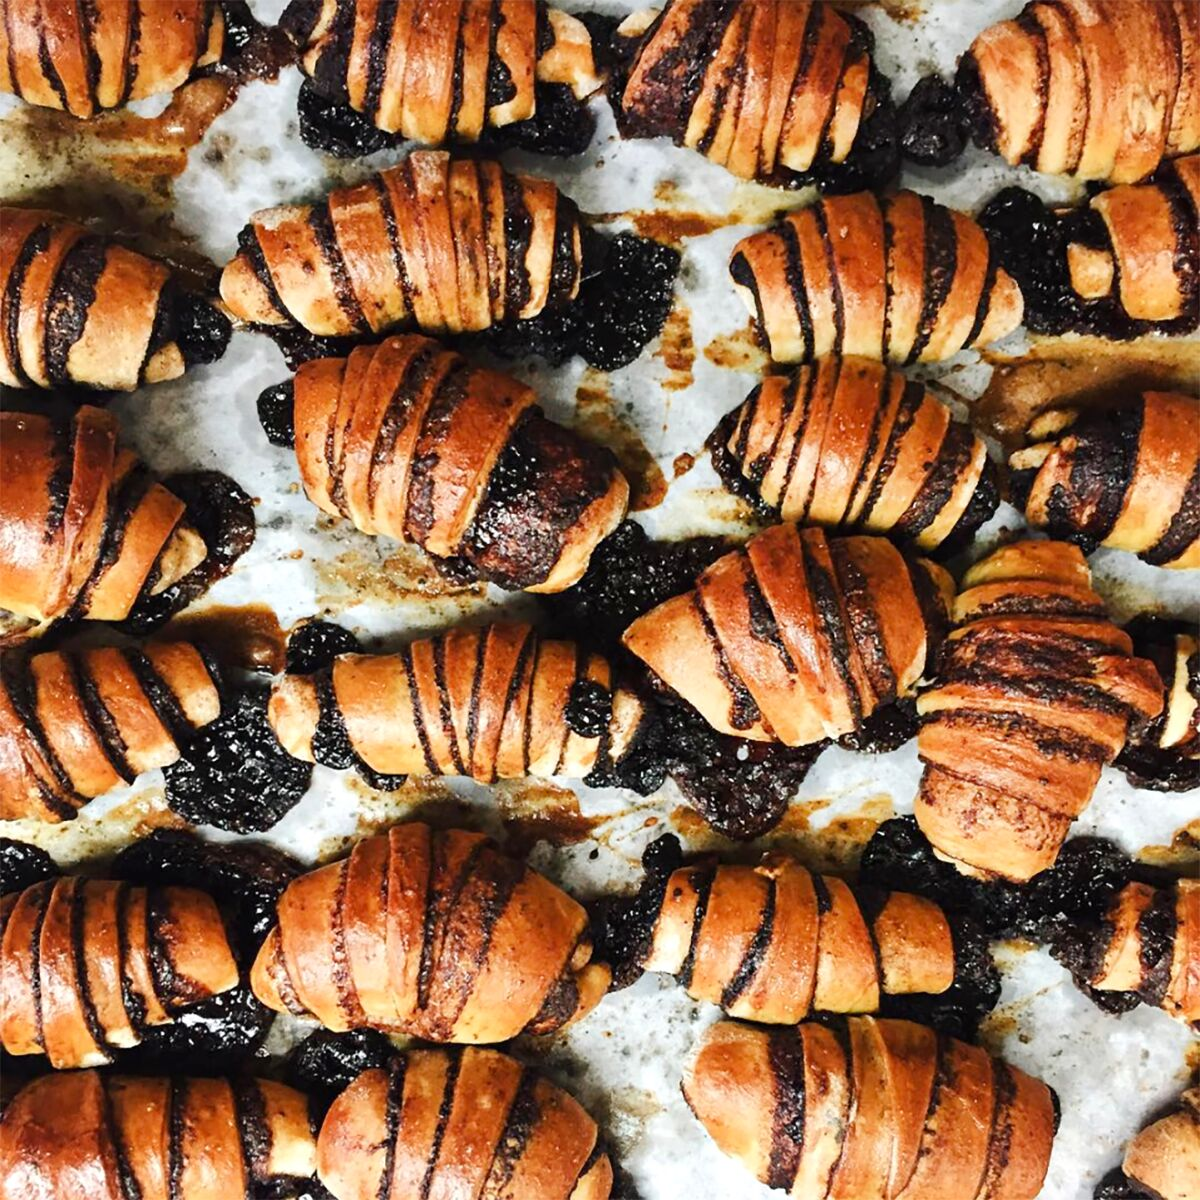 Oneg-Chocolate-Rugelach-Product-2_preview.jpg